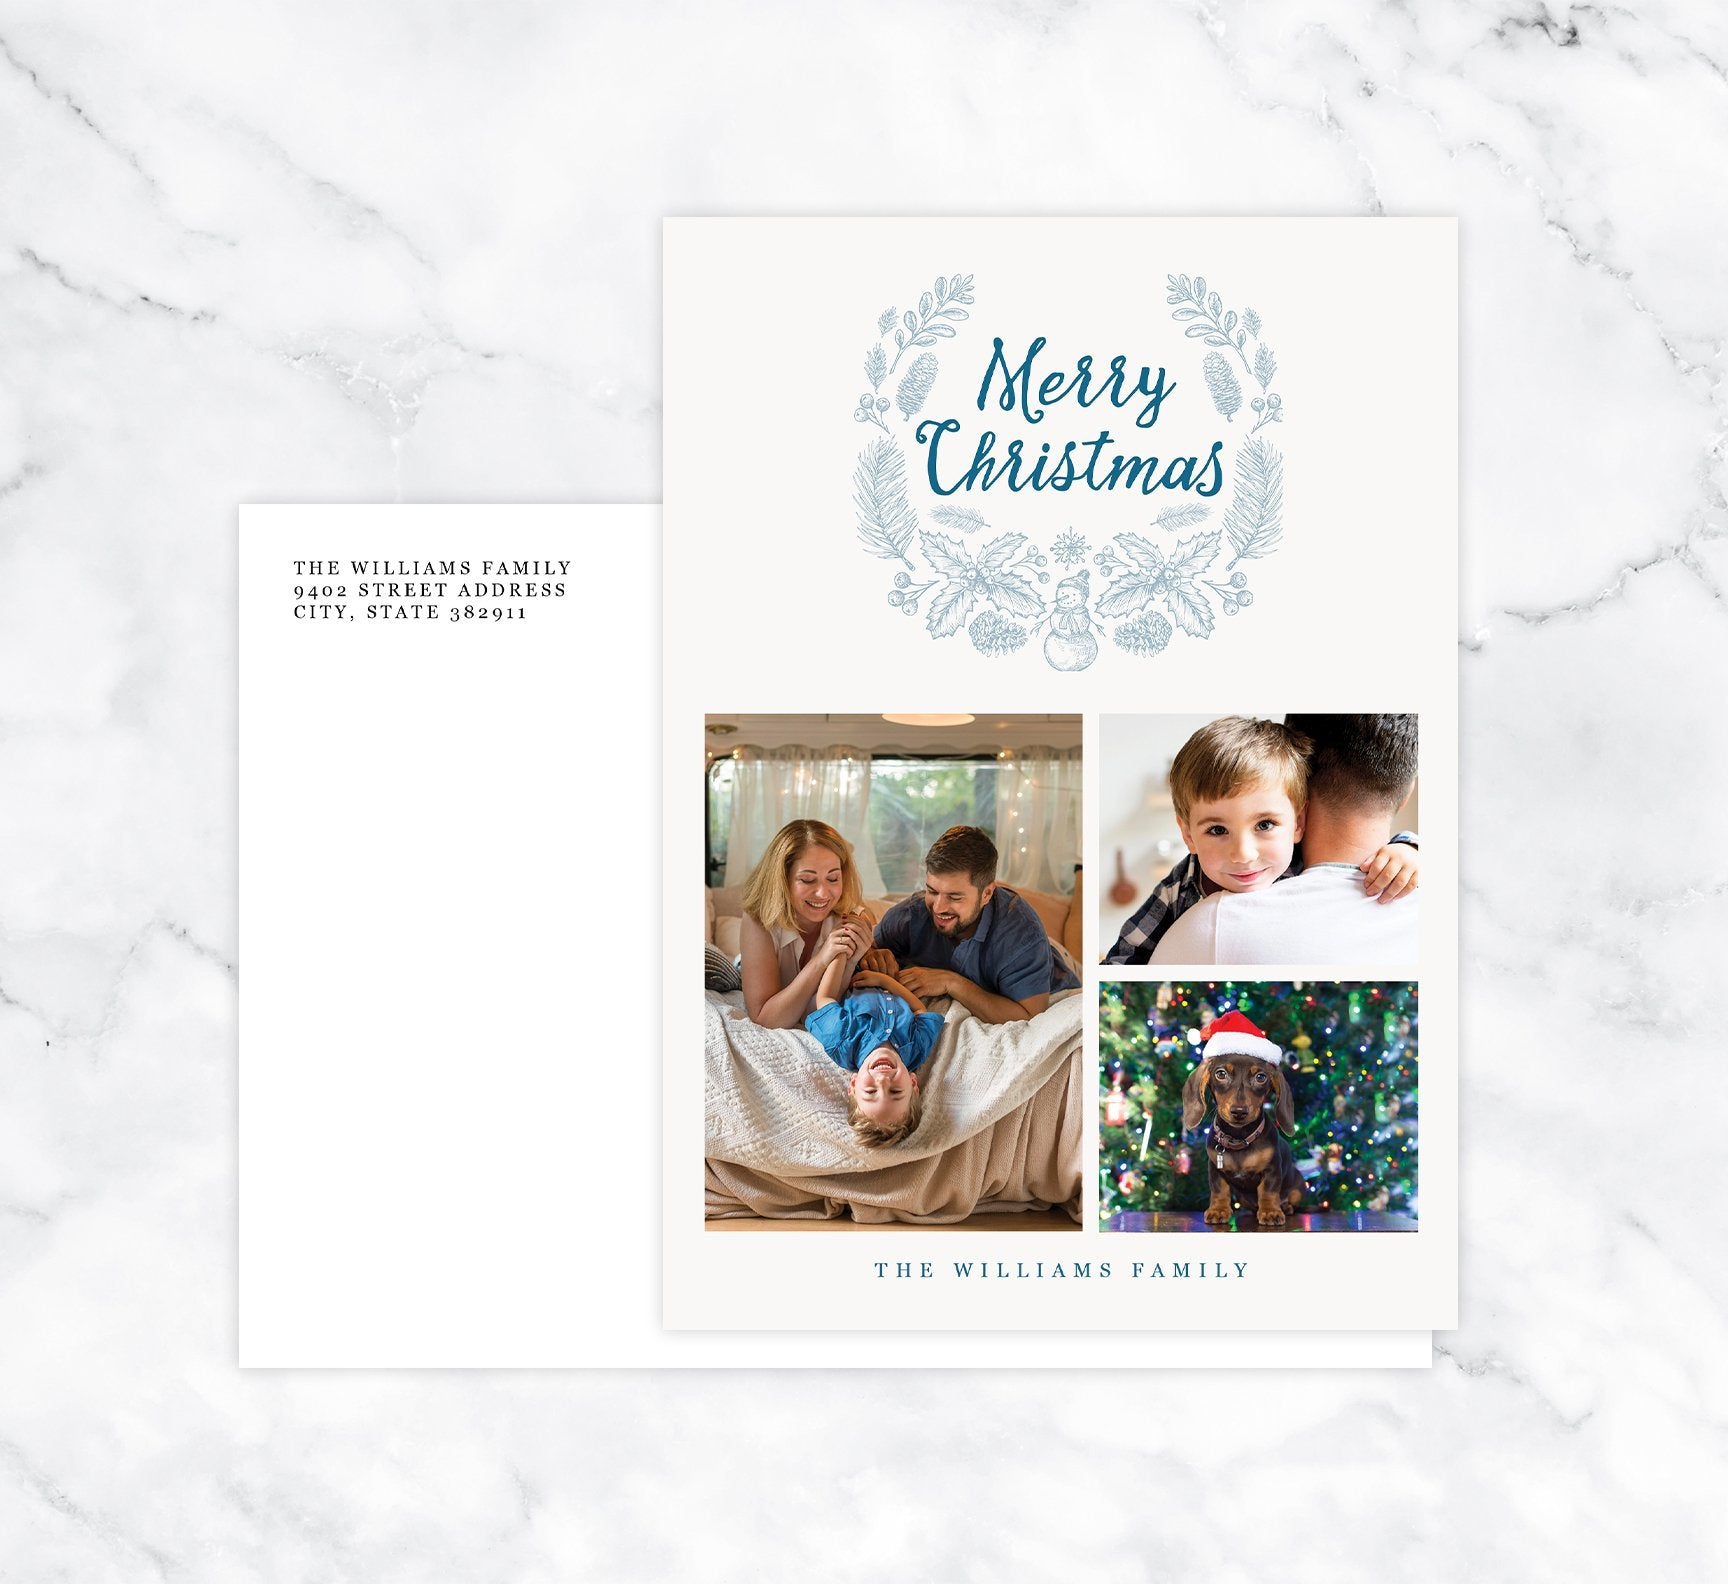 Blue Wreath Holiday Card Mockup; Holiday card with envelope and return address printed on it.